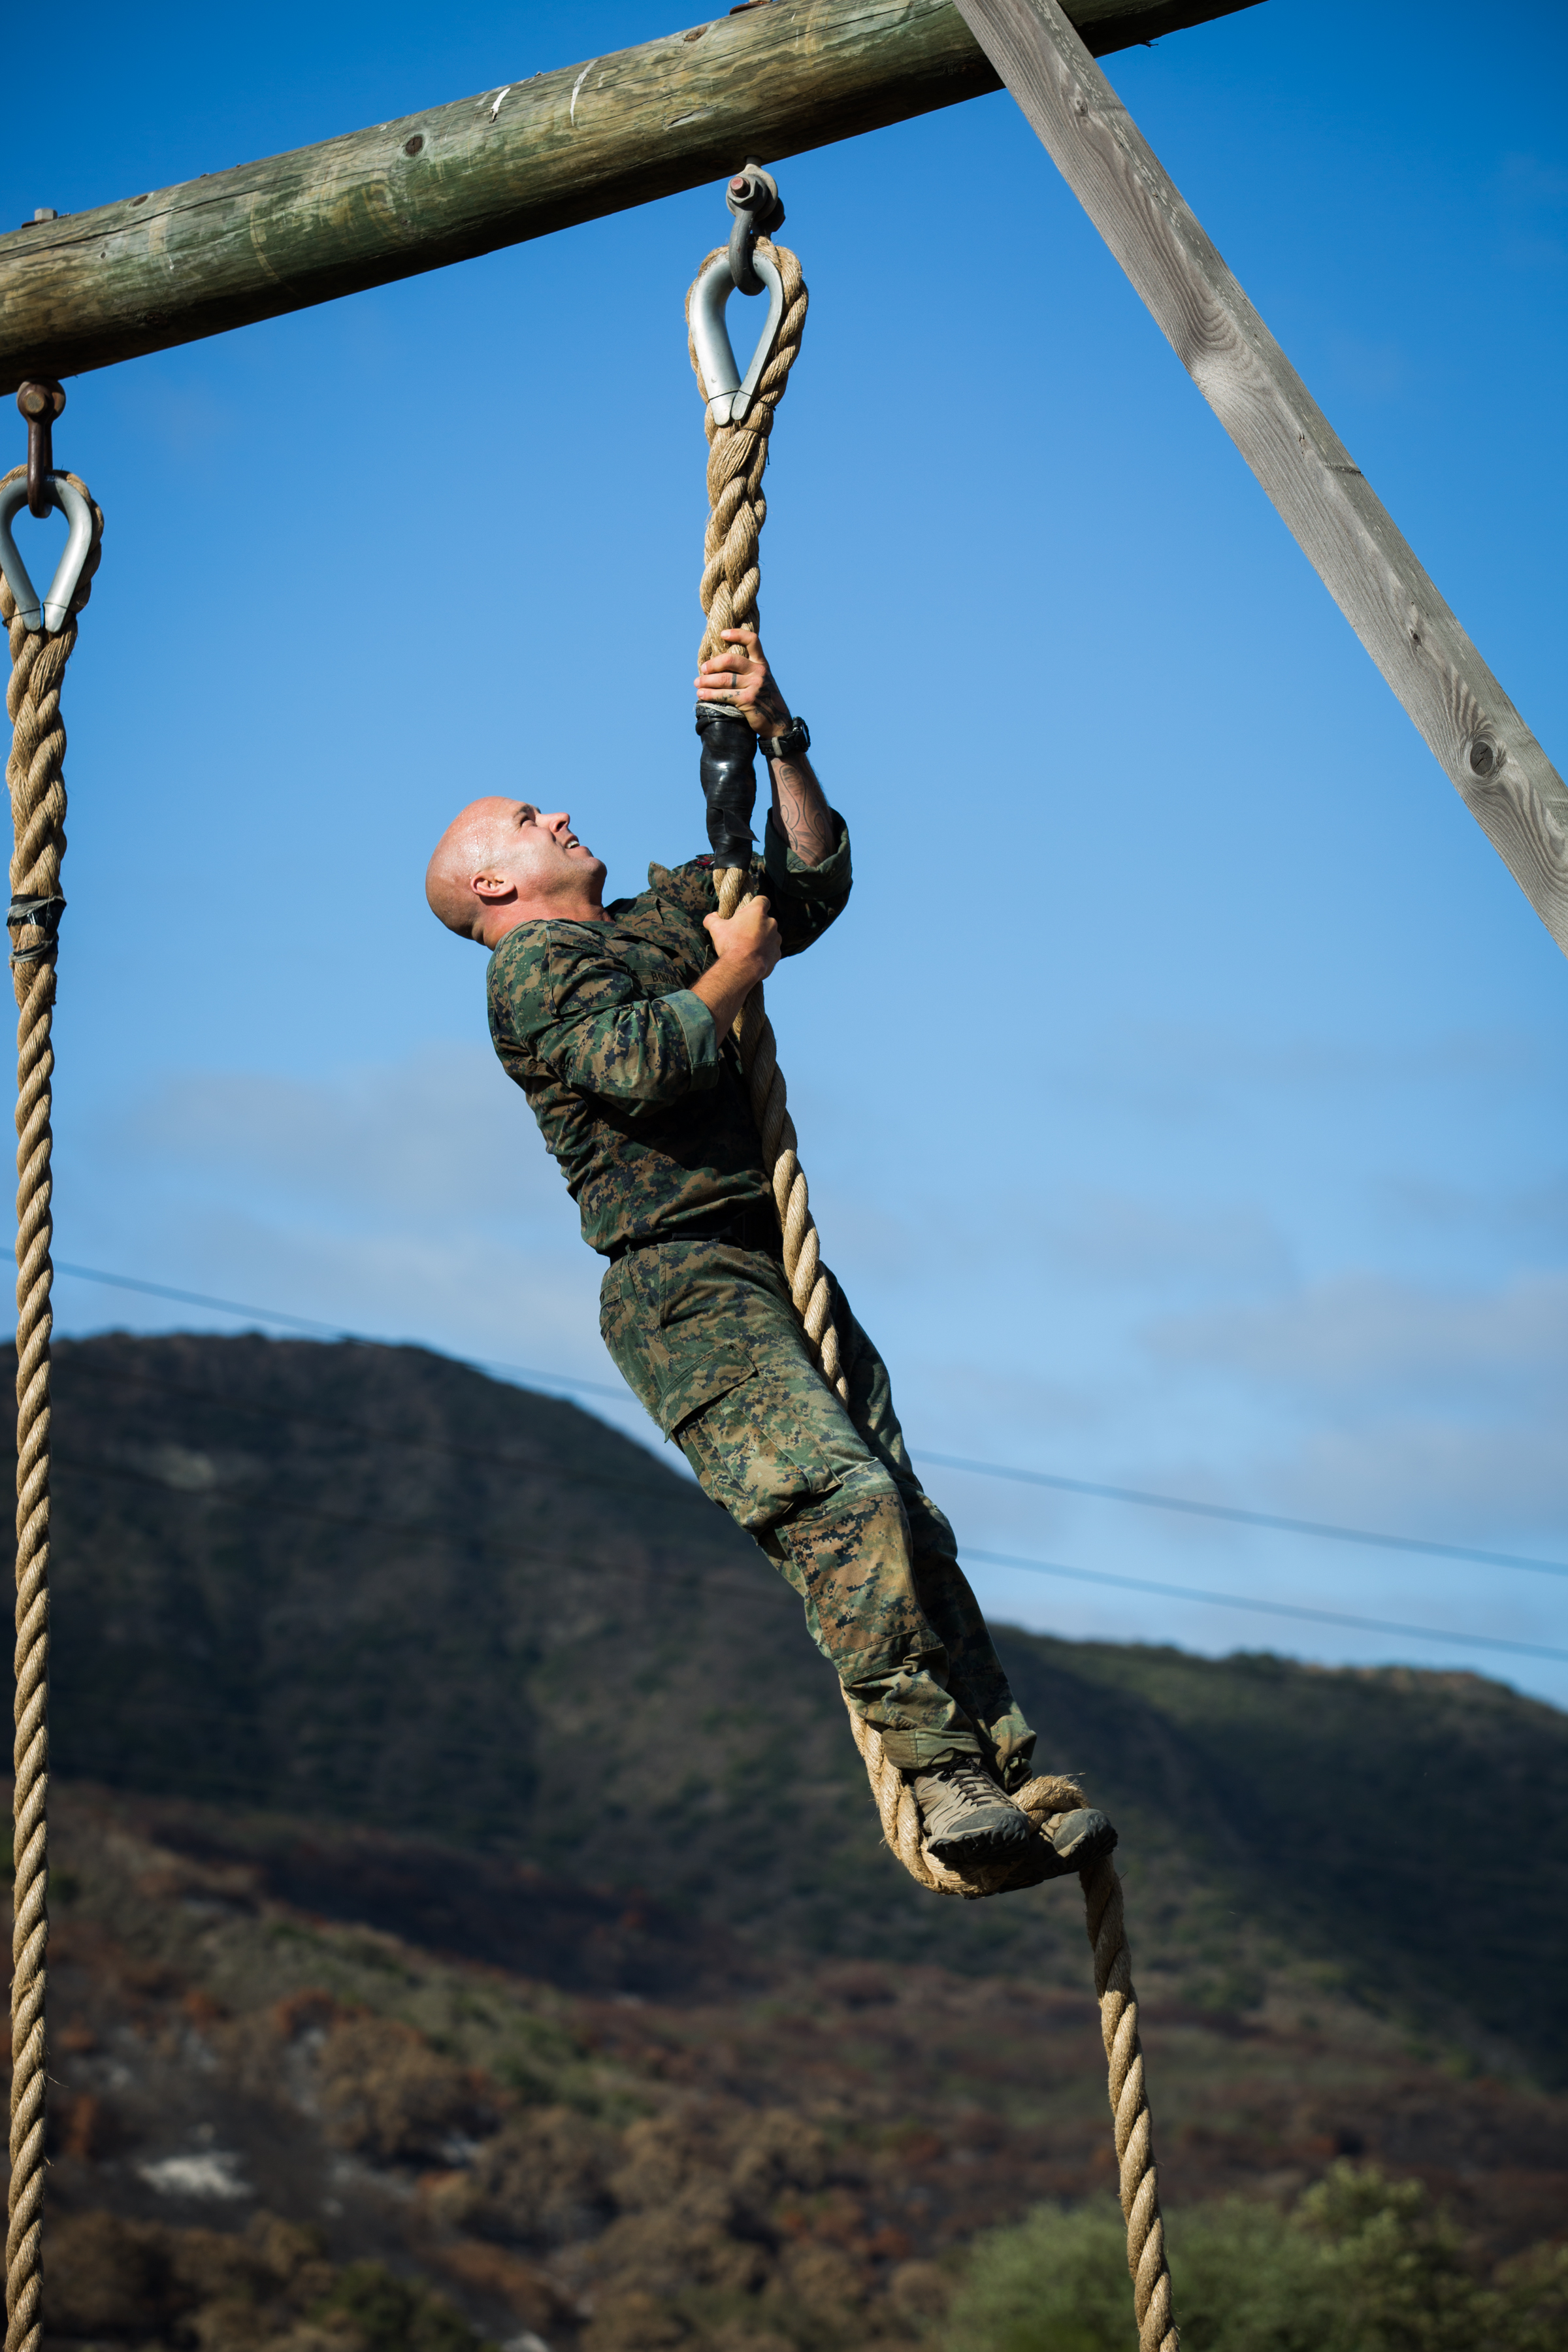 Chief Hospital Corpsman John E. Bohan III tackles the obstacle course of the Recon Challenge in memory of his fallen brother Ryan Lohrey Thursday morning at Camp Pendleton.